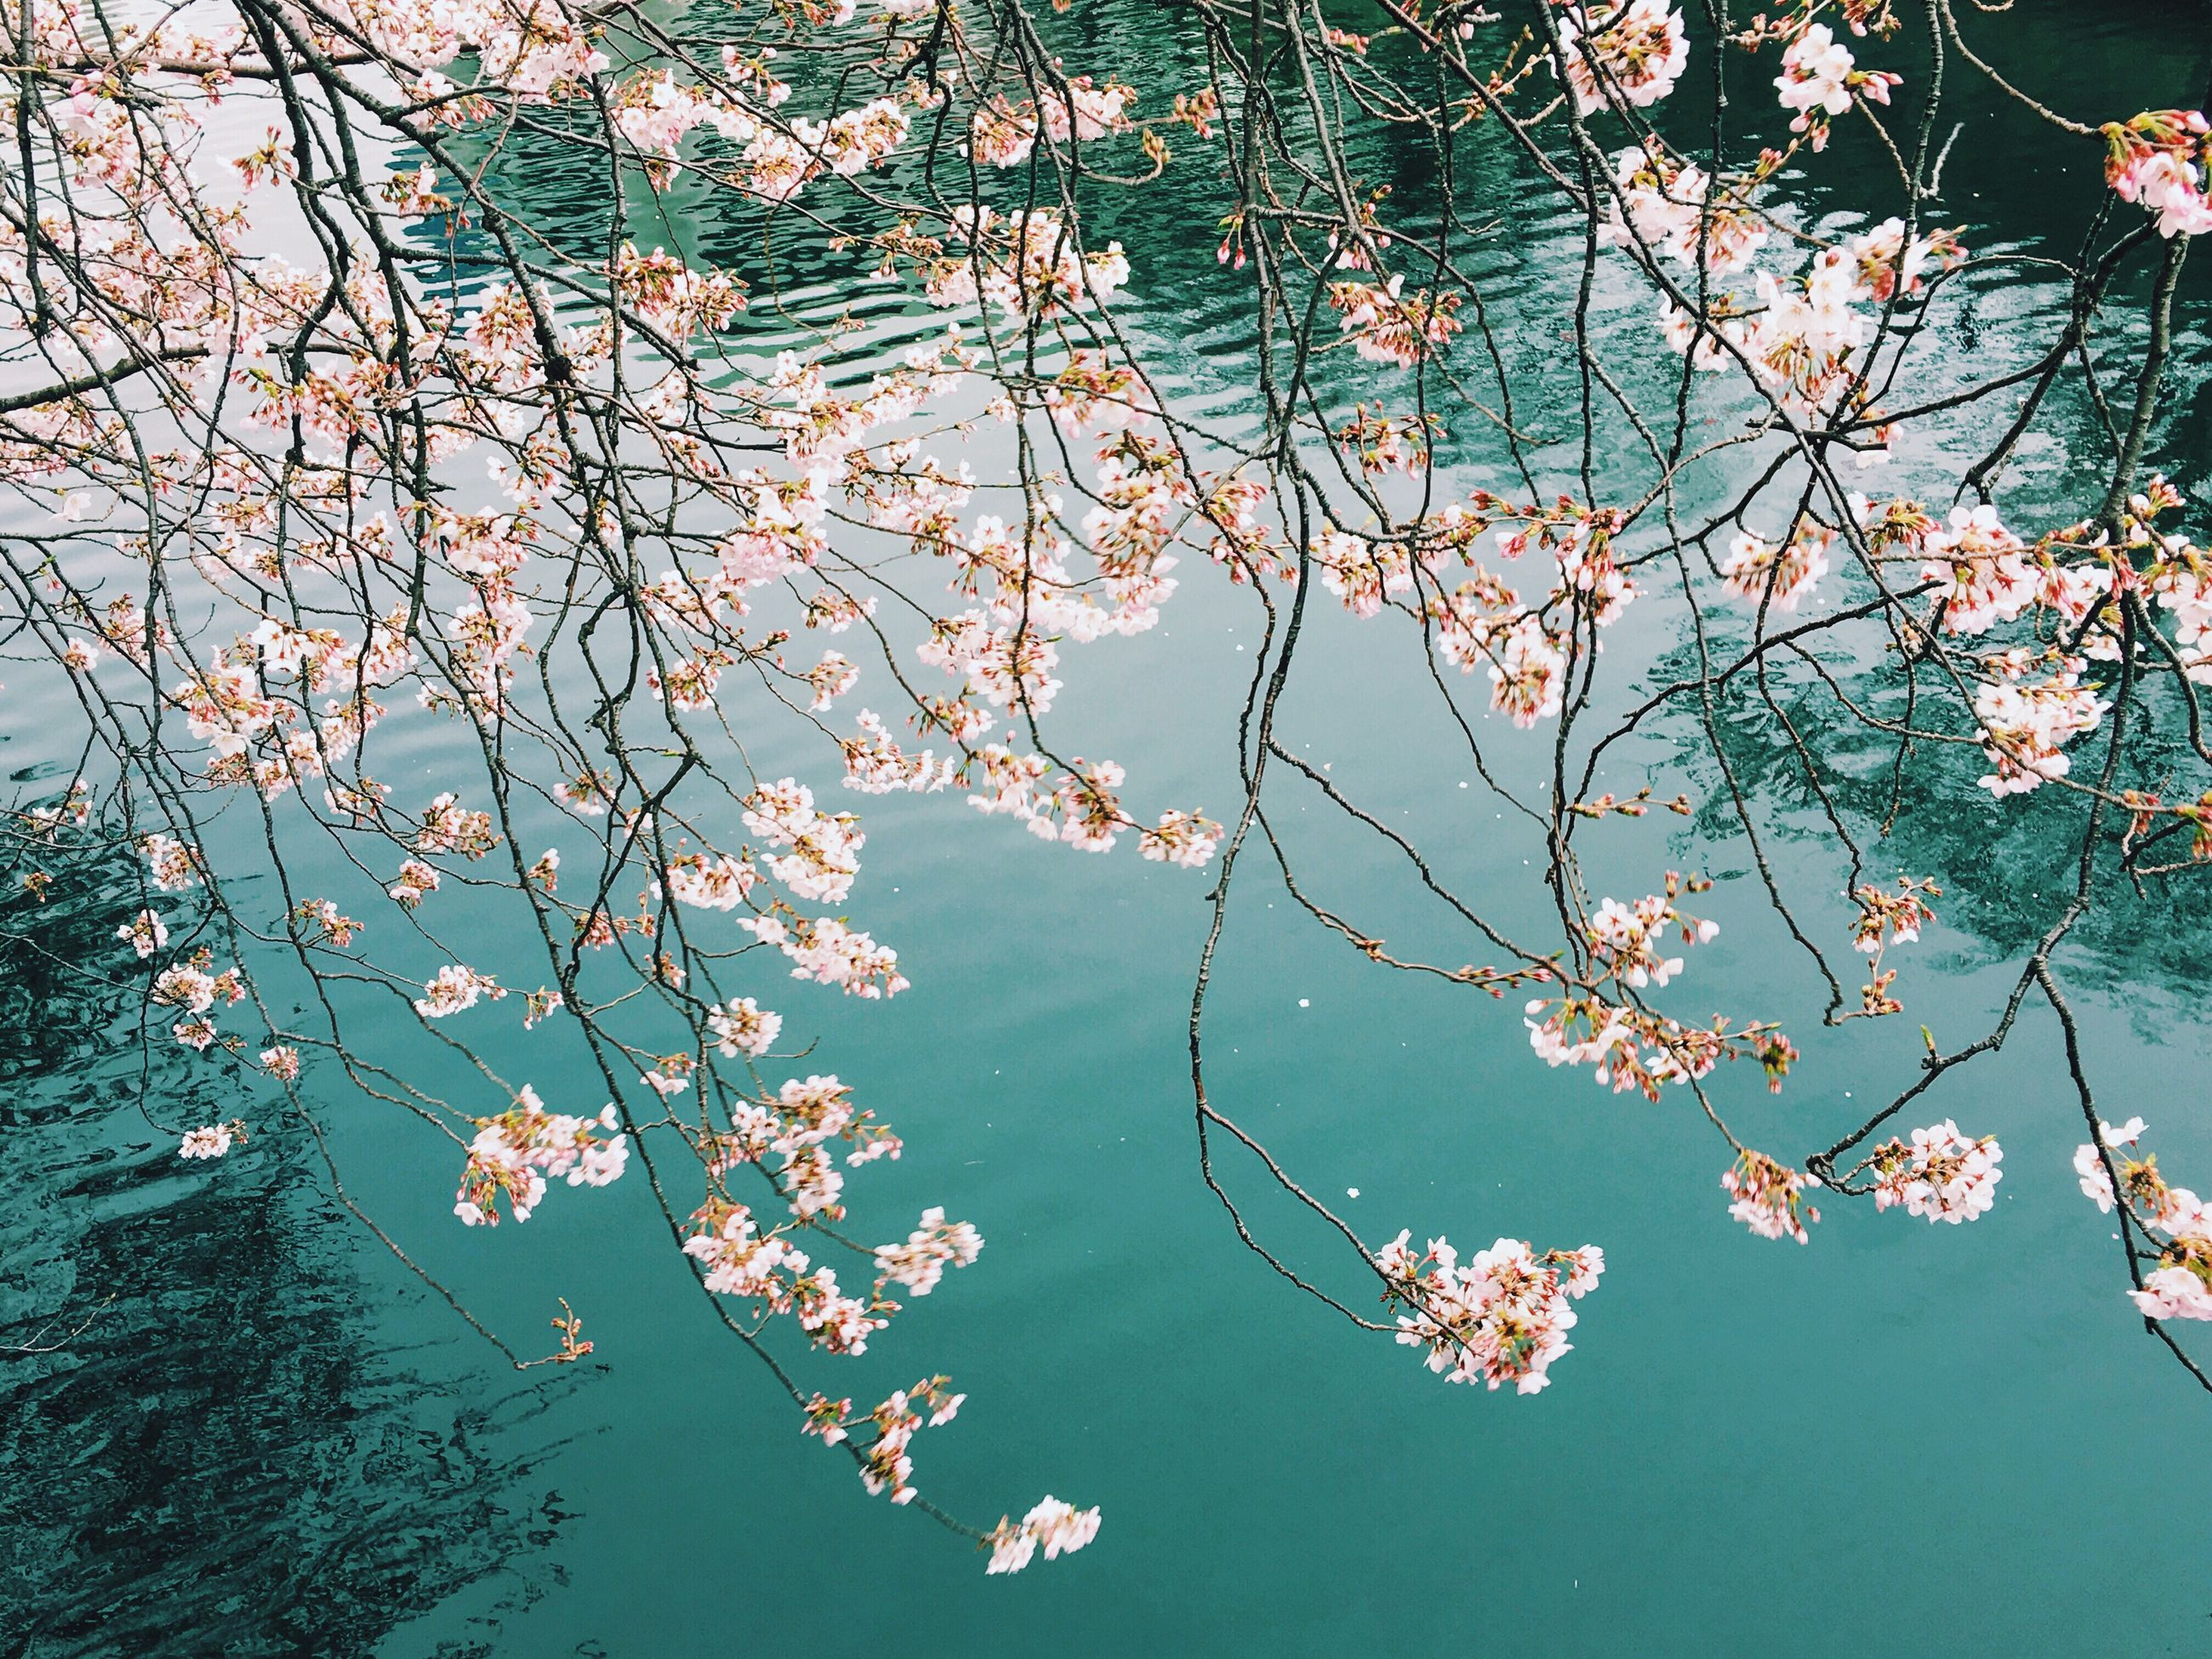 branch, tree, water, growth, leaf, nature, reflection, beauty in nature, lake, tranquility, waterfront, flower, floating on water, outdoors, day, autumn, no people, plant, twig, freshness